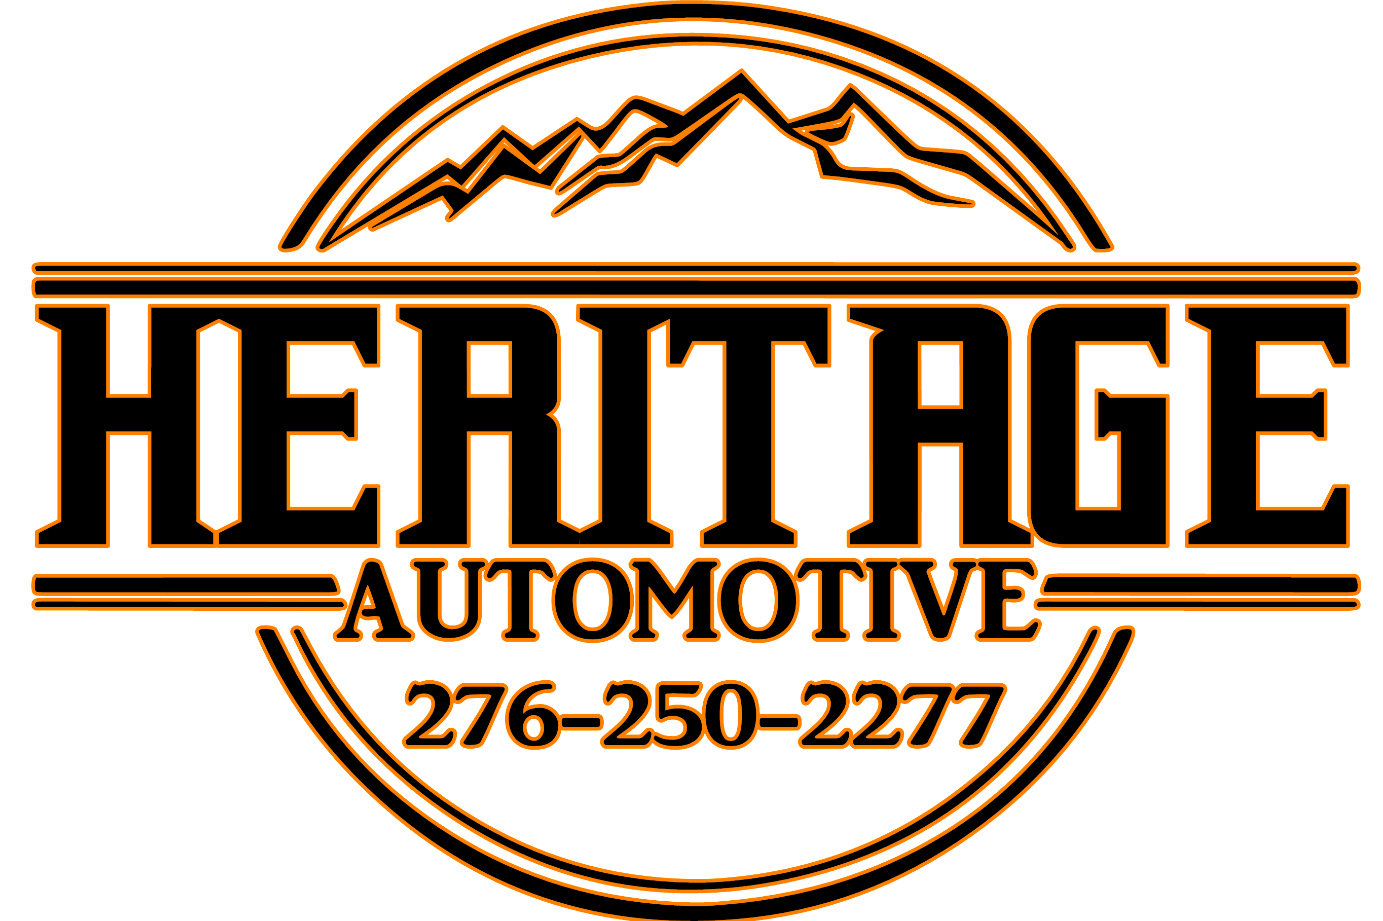 heritage automotive rural retreat va read consumer reviews browse used and new cars for sale. Black Bedroom Furniture Sets. Home Design Ideas